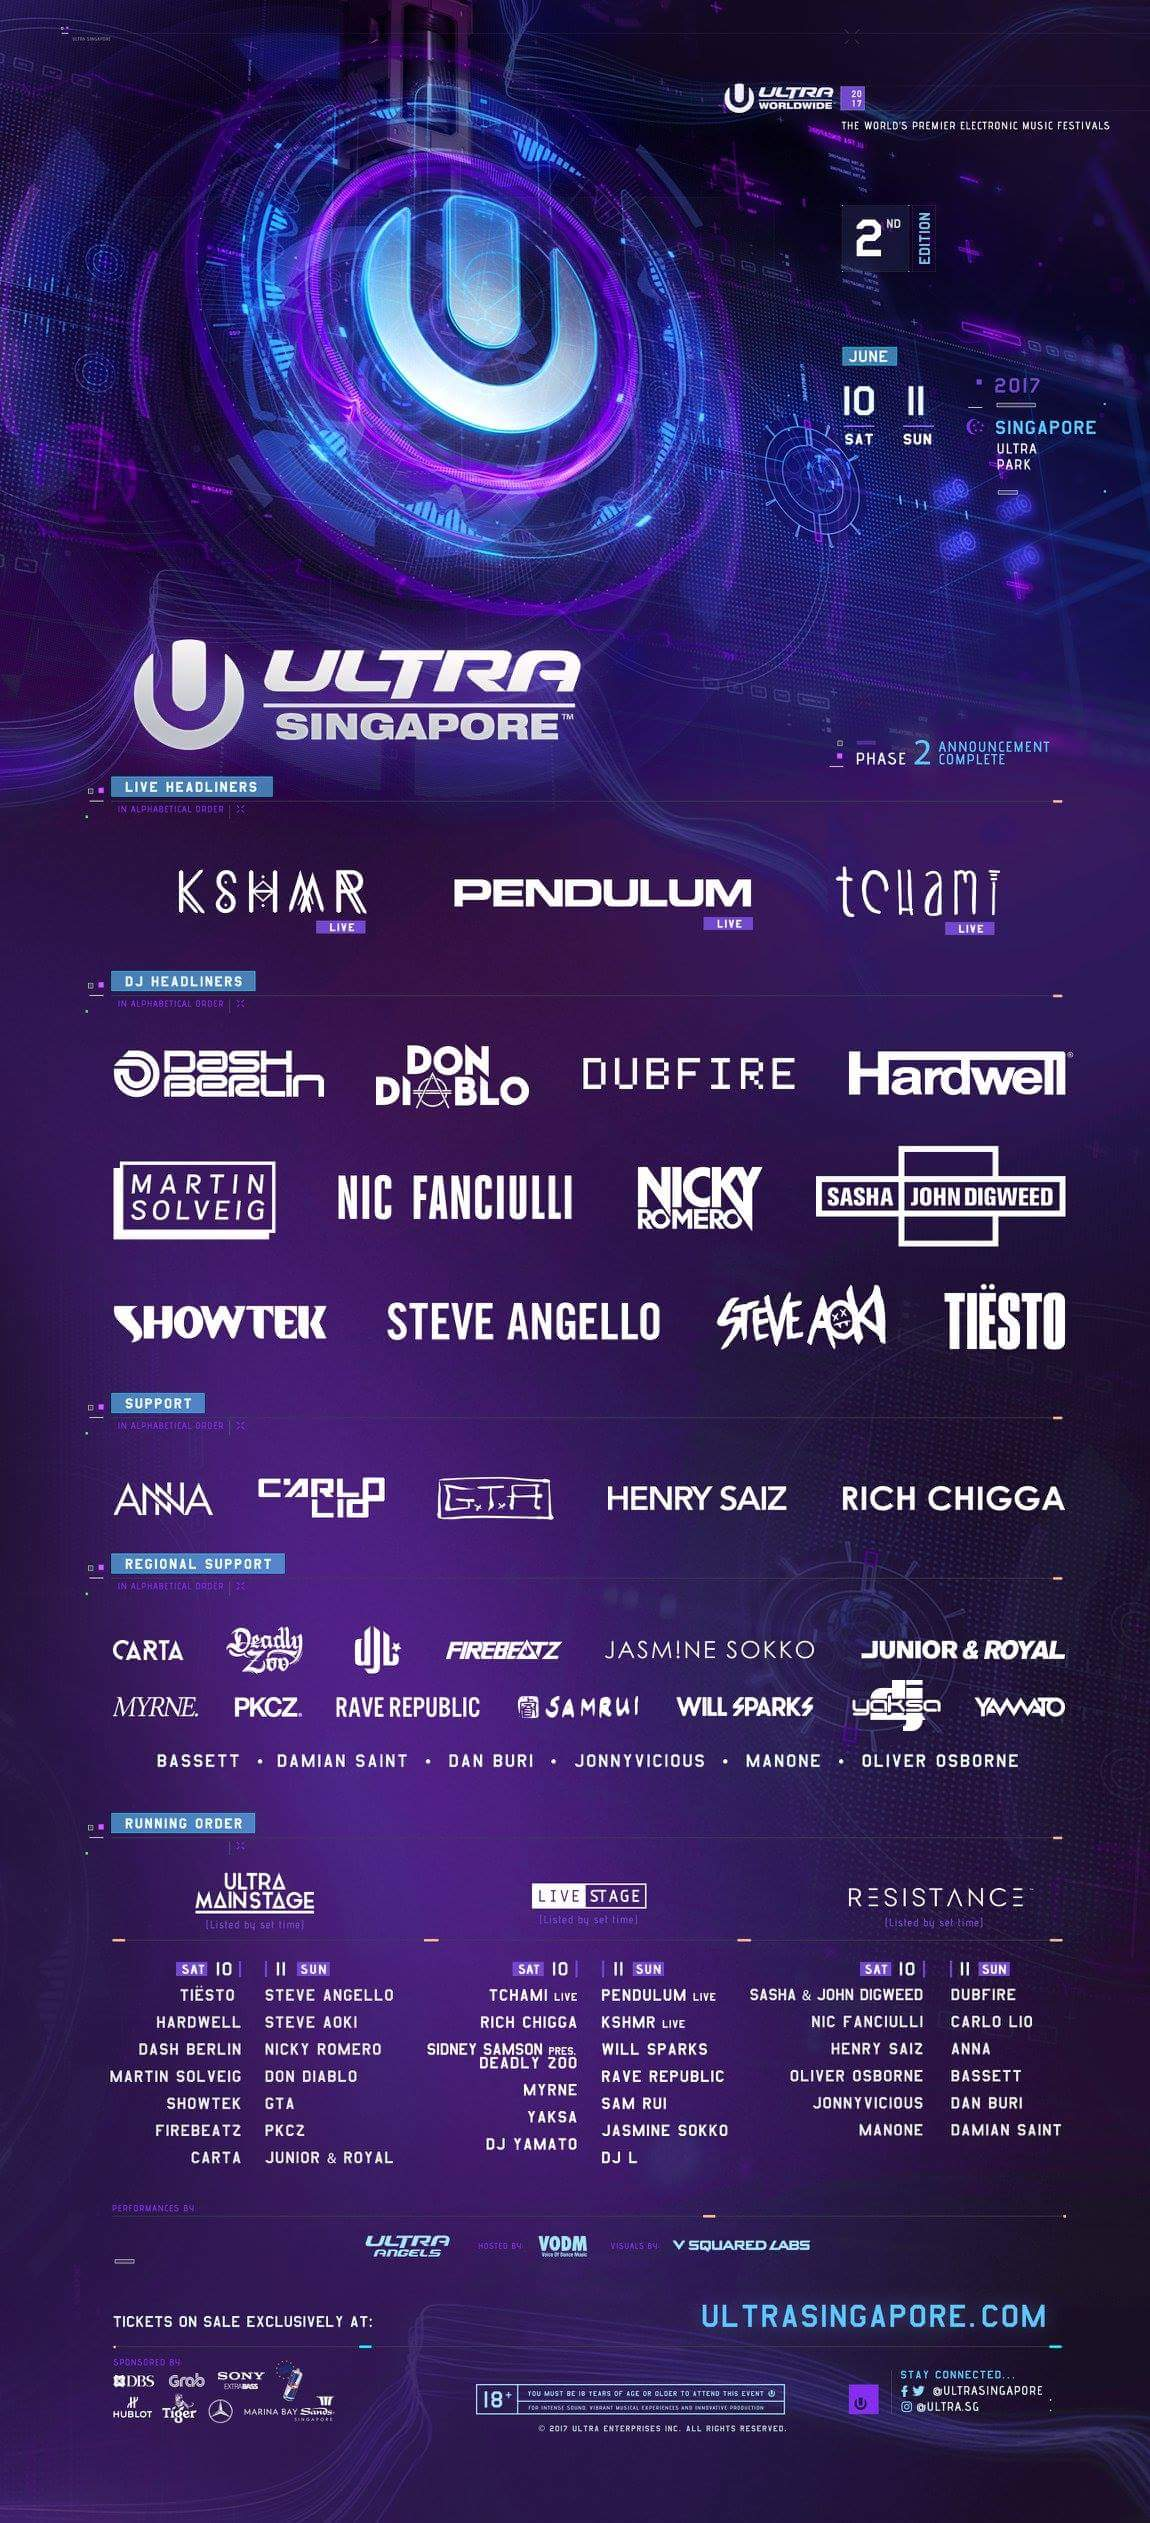 ultra_singapura_backstages